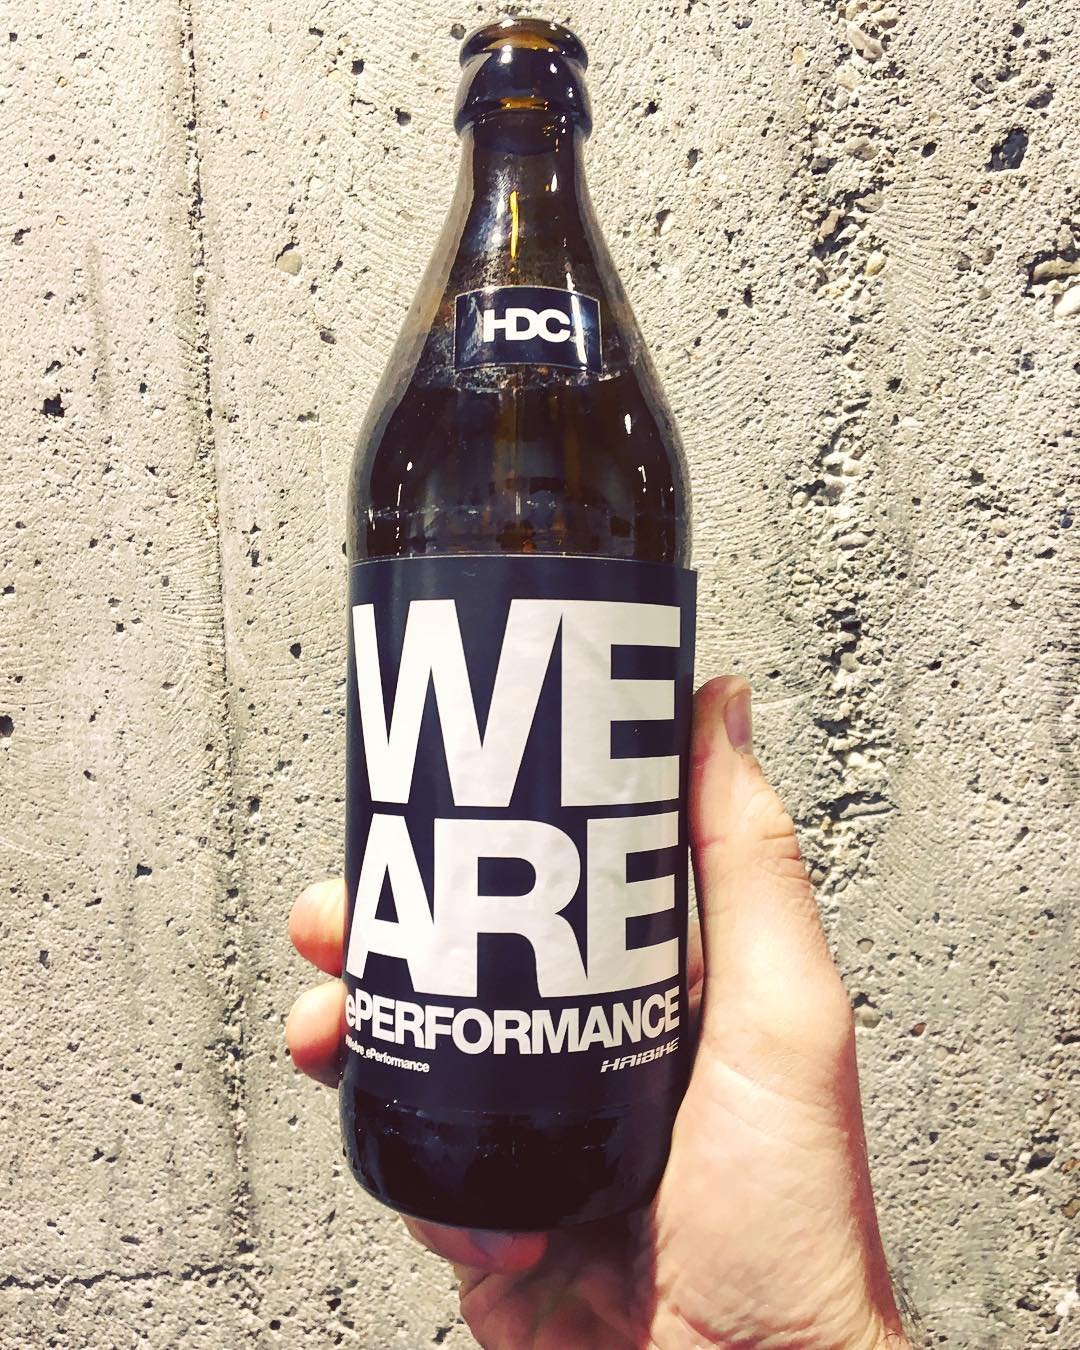 Prost. Feierabend 🍻 #weareeperformance #agencylife #designagency #feierabend